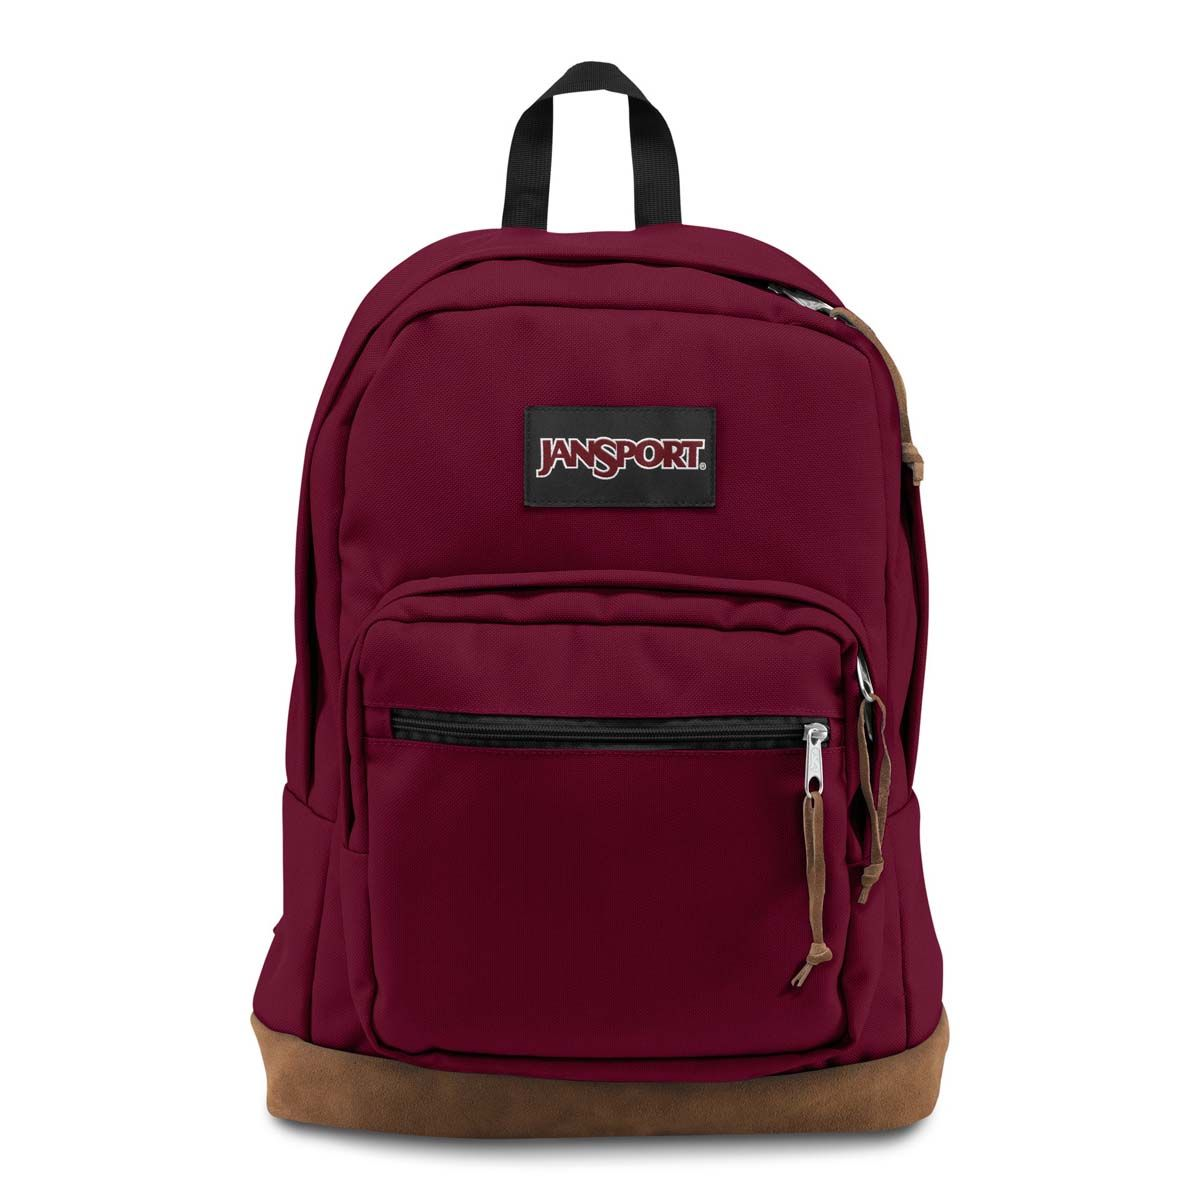 JanSport Right Pack Backpack in Russet Red